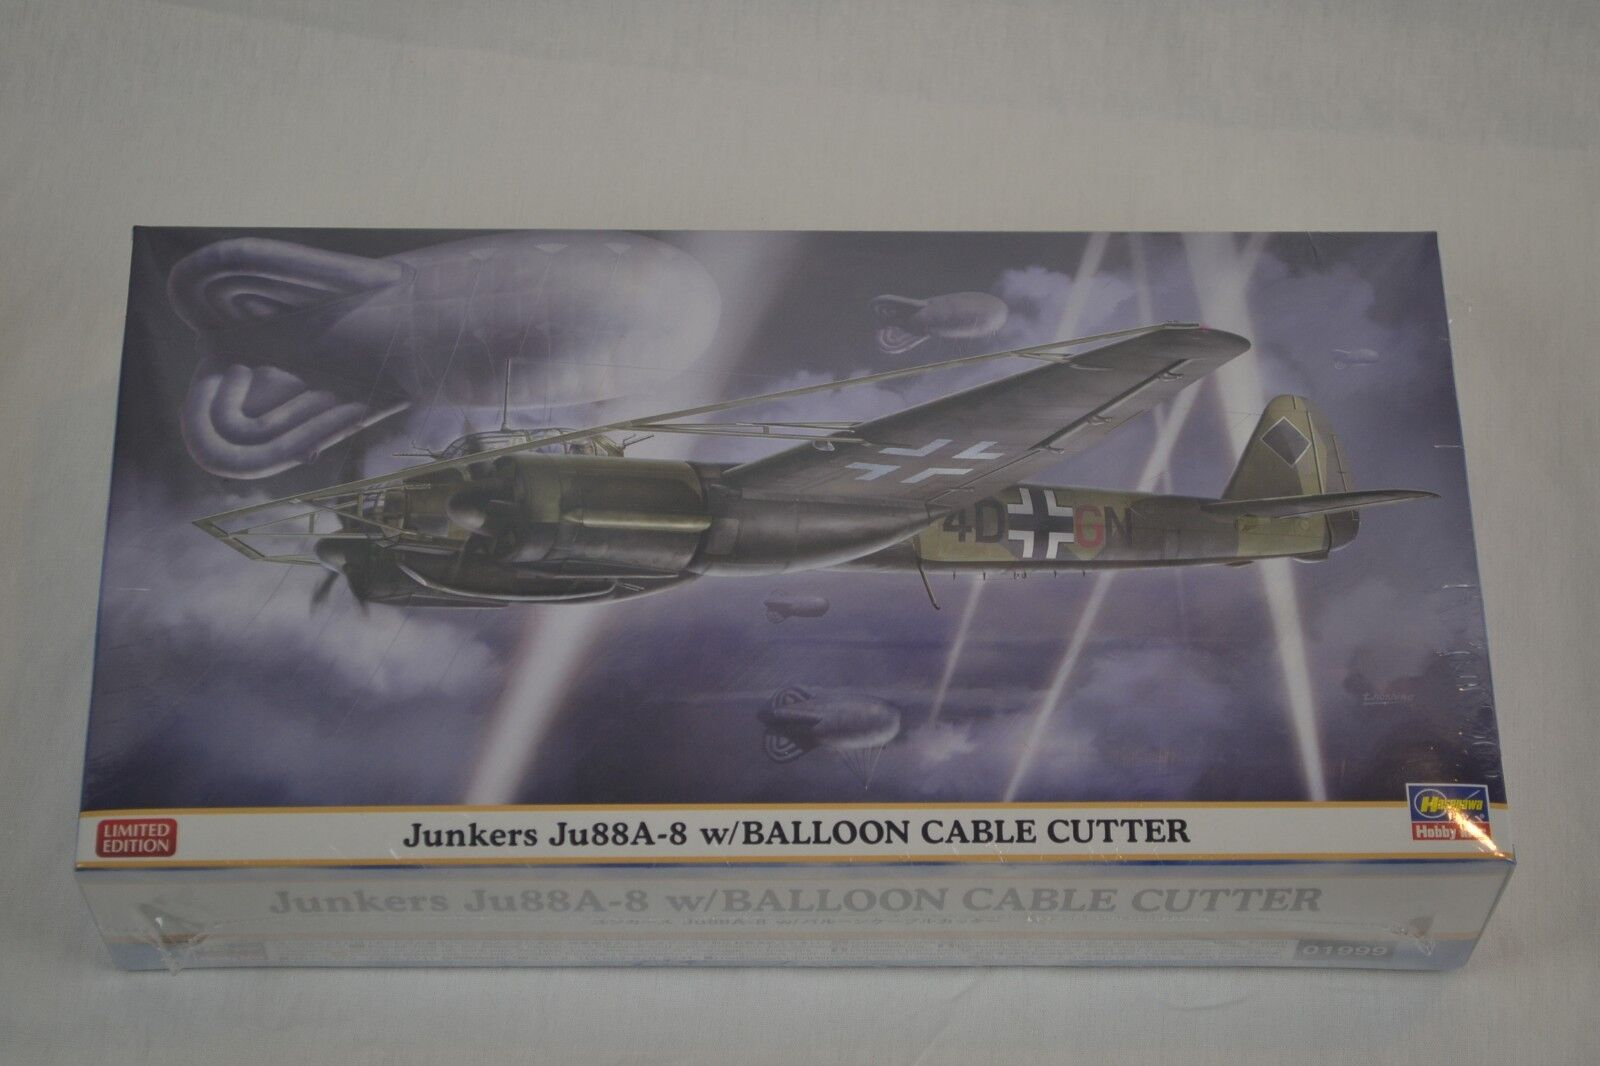 Hasegawa 01999 1 72 Junkers Ju 88A-8 with Balloon Cable Cutter